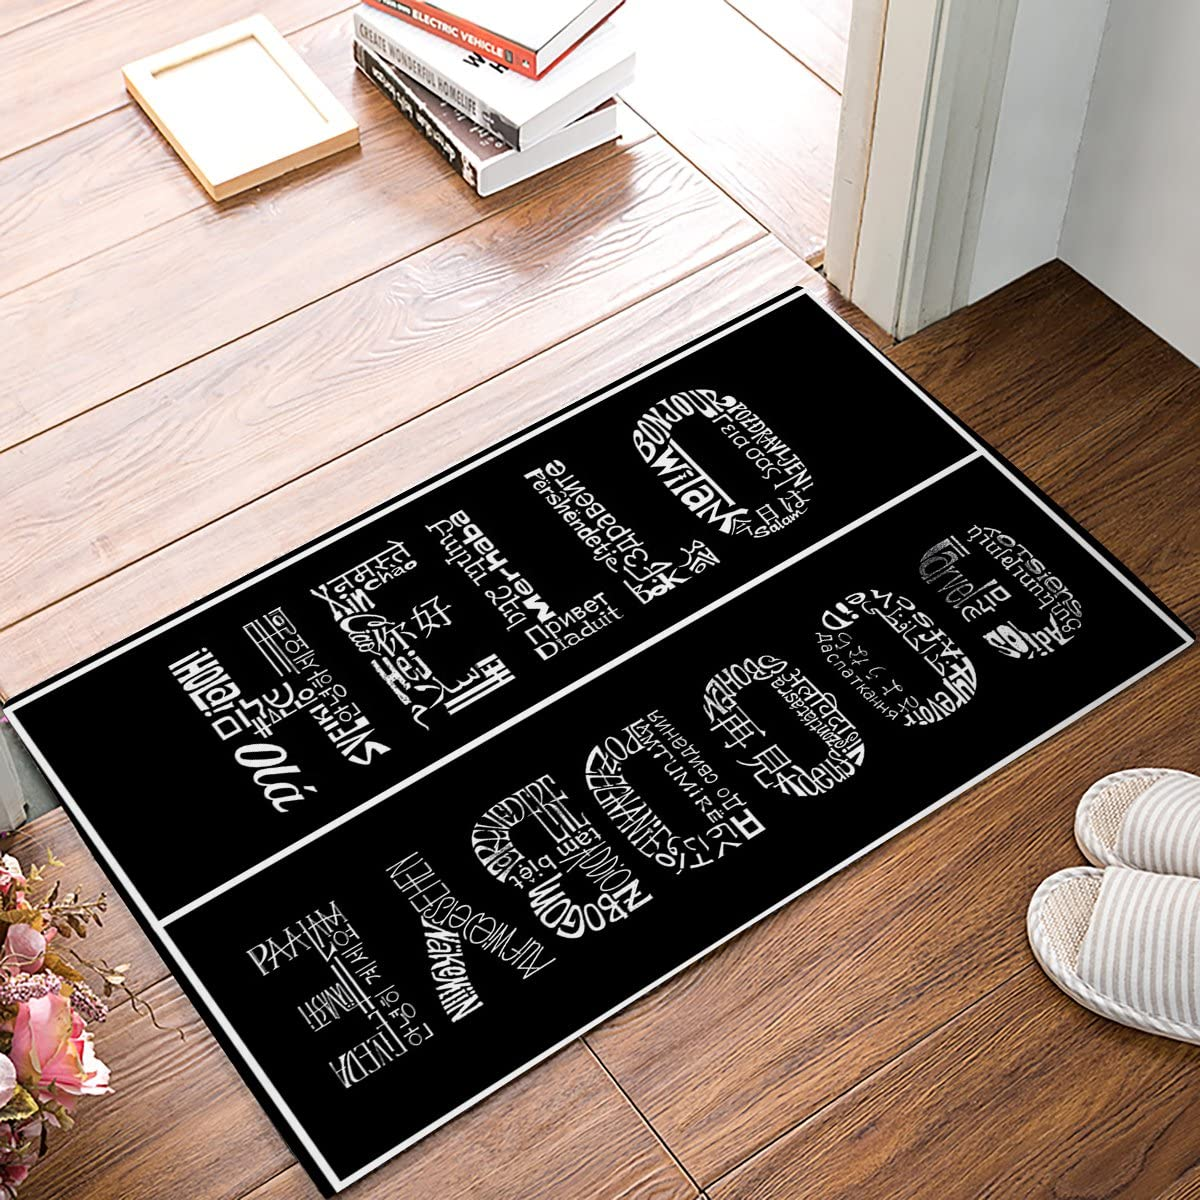 Funny Waterproof Bathroom Doormat Home Decor Welcome Large Mat Entrance Way Indoor Carpet Floor Rugs 30x18 Inch, Hello and Goodbye Black by Olivefox